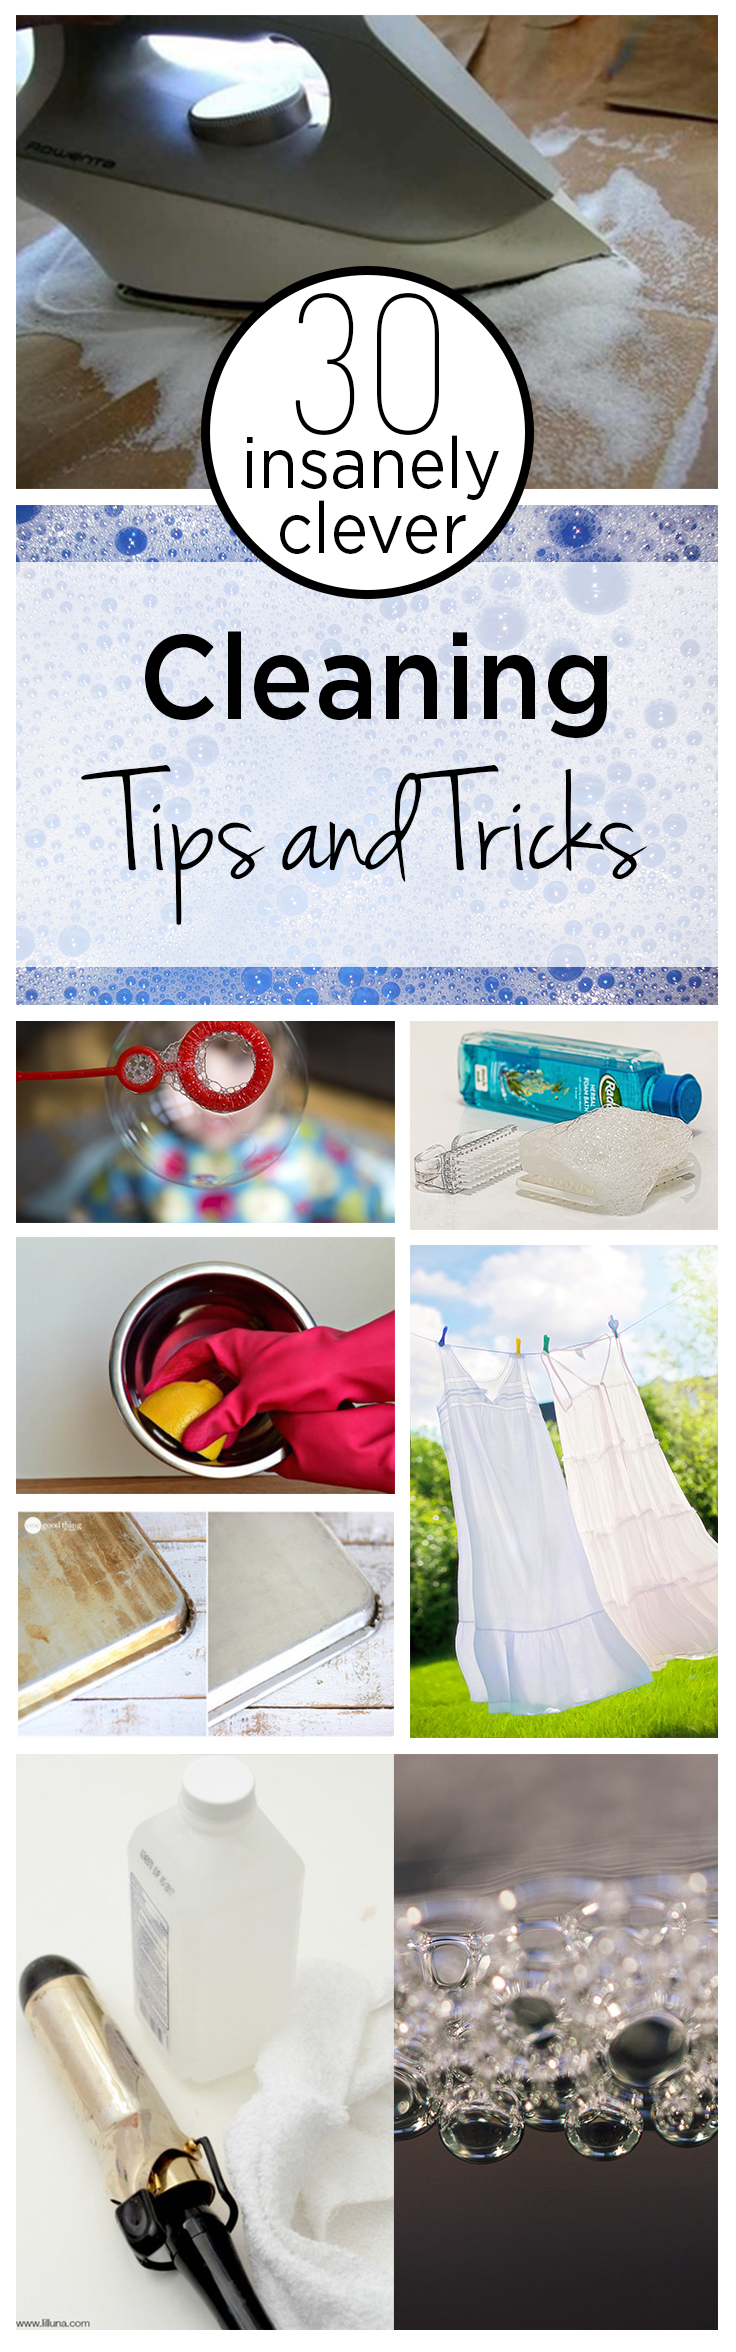 30 Insanely Clever Cleaning Tips and Tricks